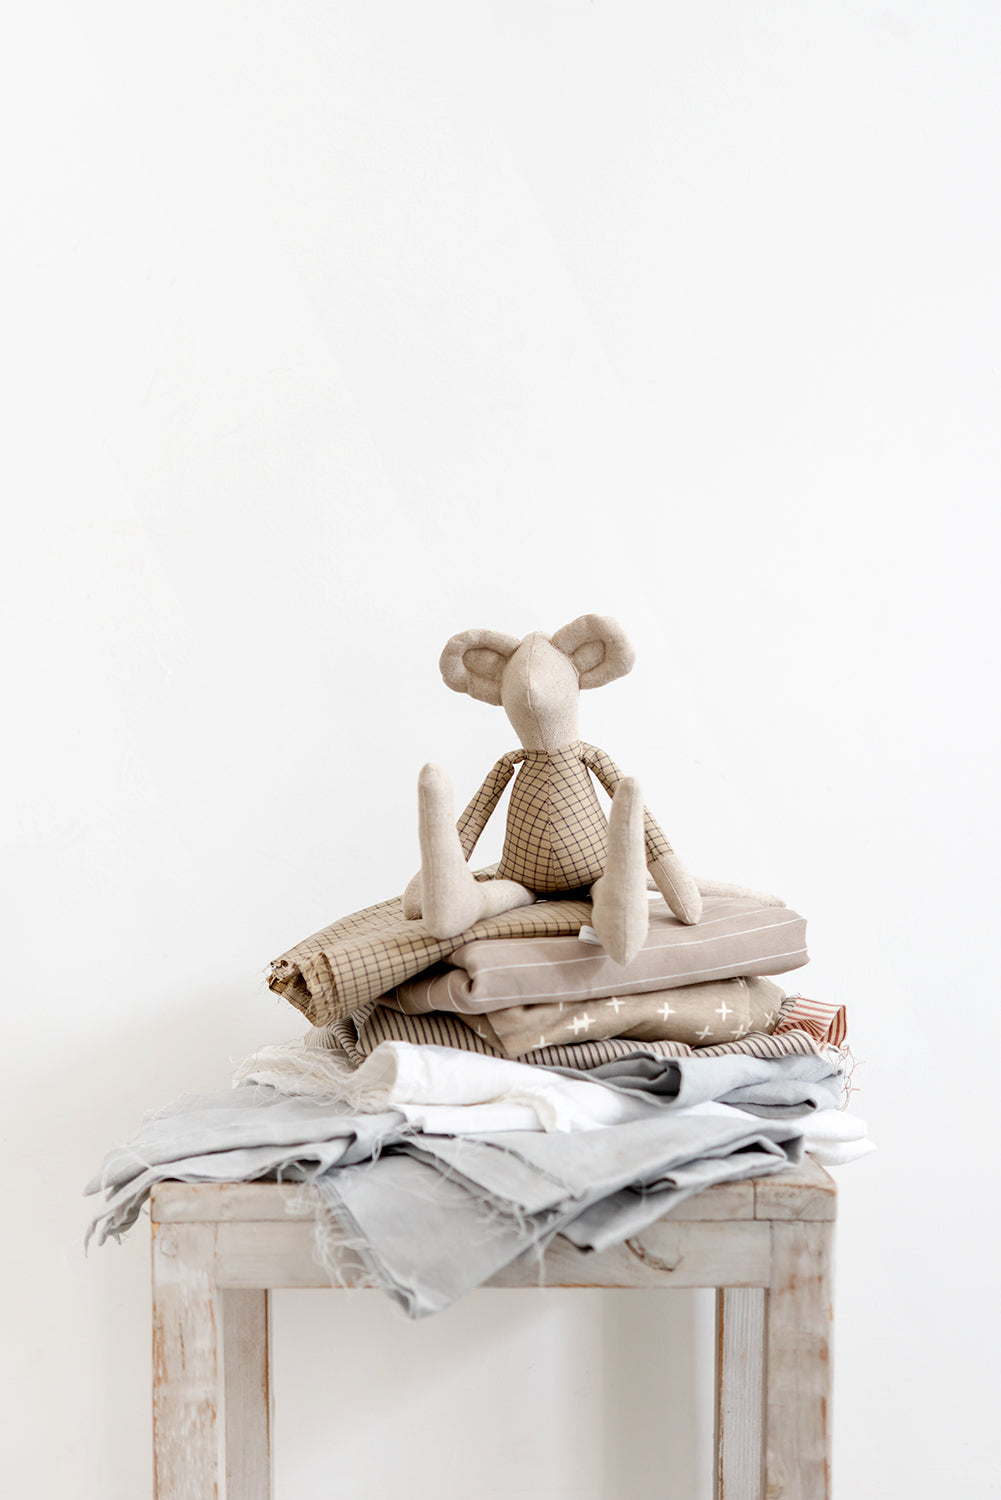 Mice doll Minimalist doll Linen mouse Natural plushy Handmade doll Mouse rag doll Stuffed cloth mouse doll Cuddly soft toy Heirloom doll